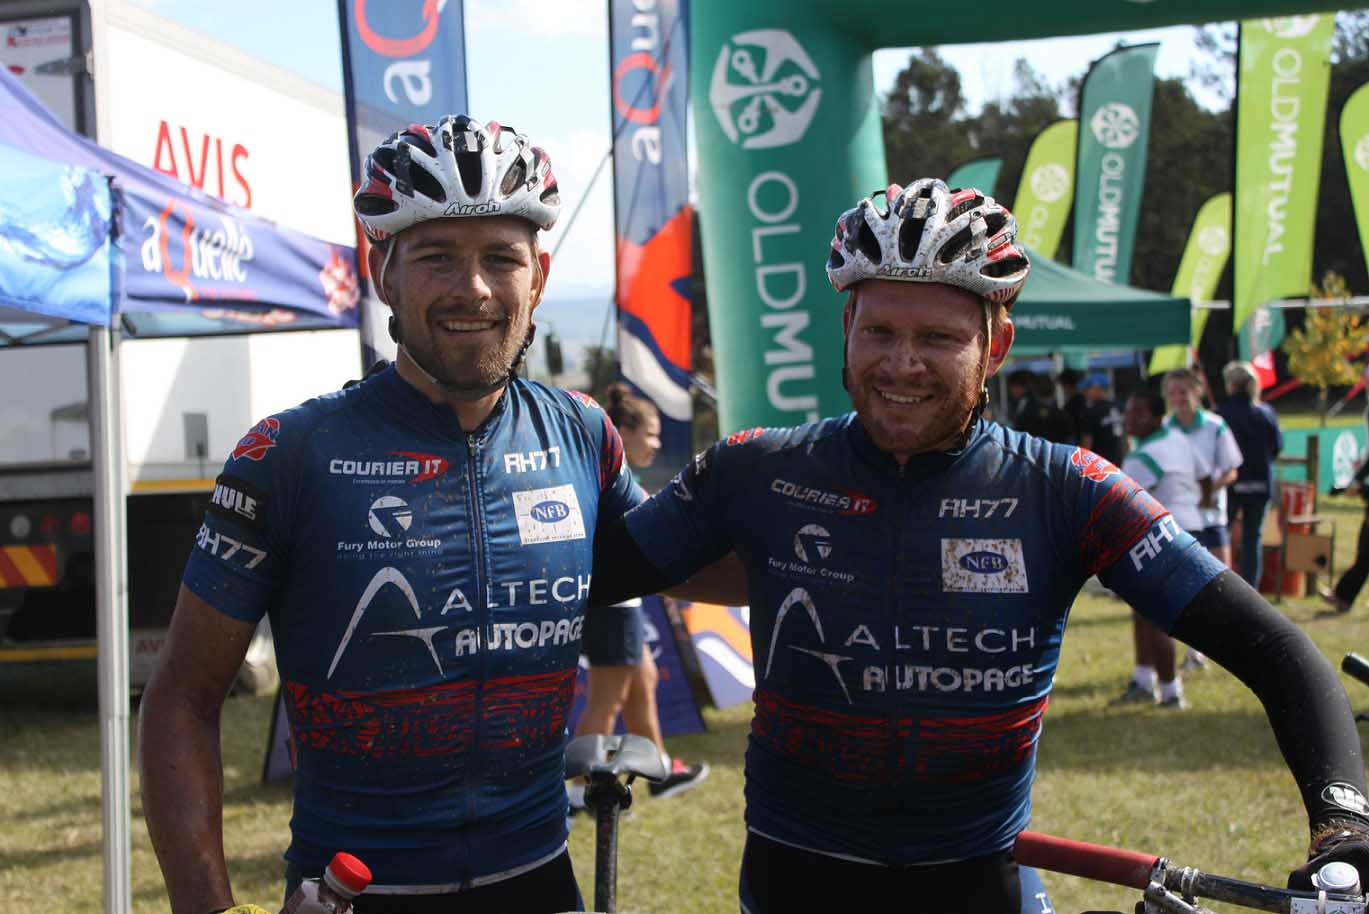 Pieter Seyffert (left) and Hanco Kachelhoffer of Altech Autopage Karan Beef won stage seven of the 2015 Old Mutual joBerg2c at MacKenzie Club, Ixopo, today. Photo: Full Stop Communications